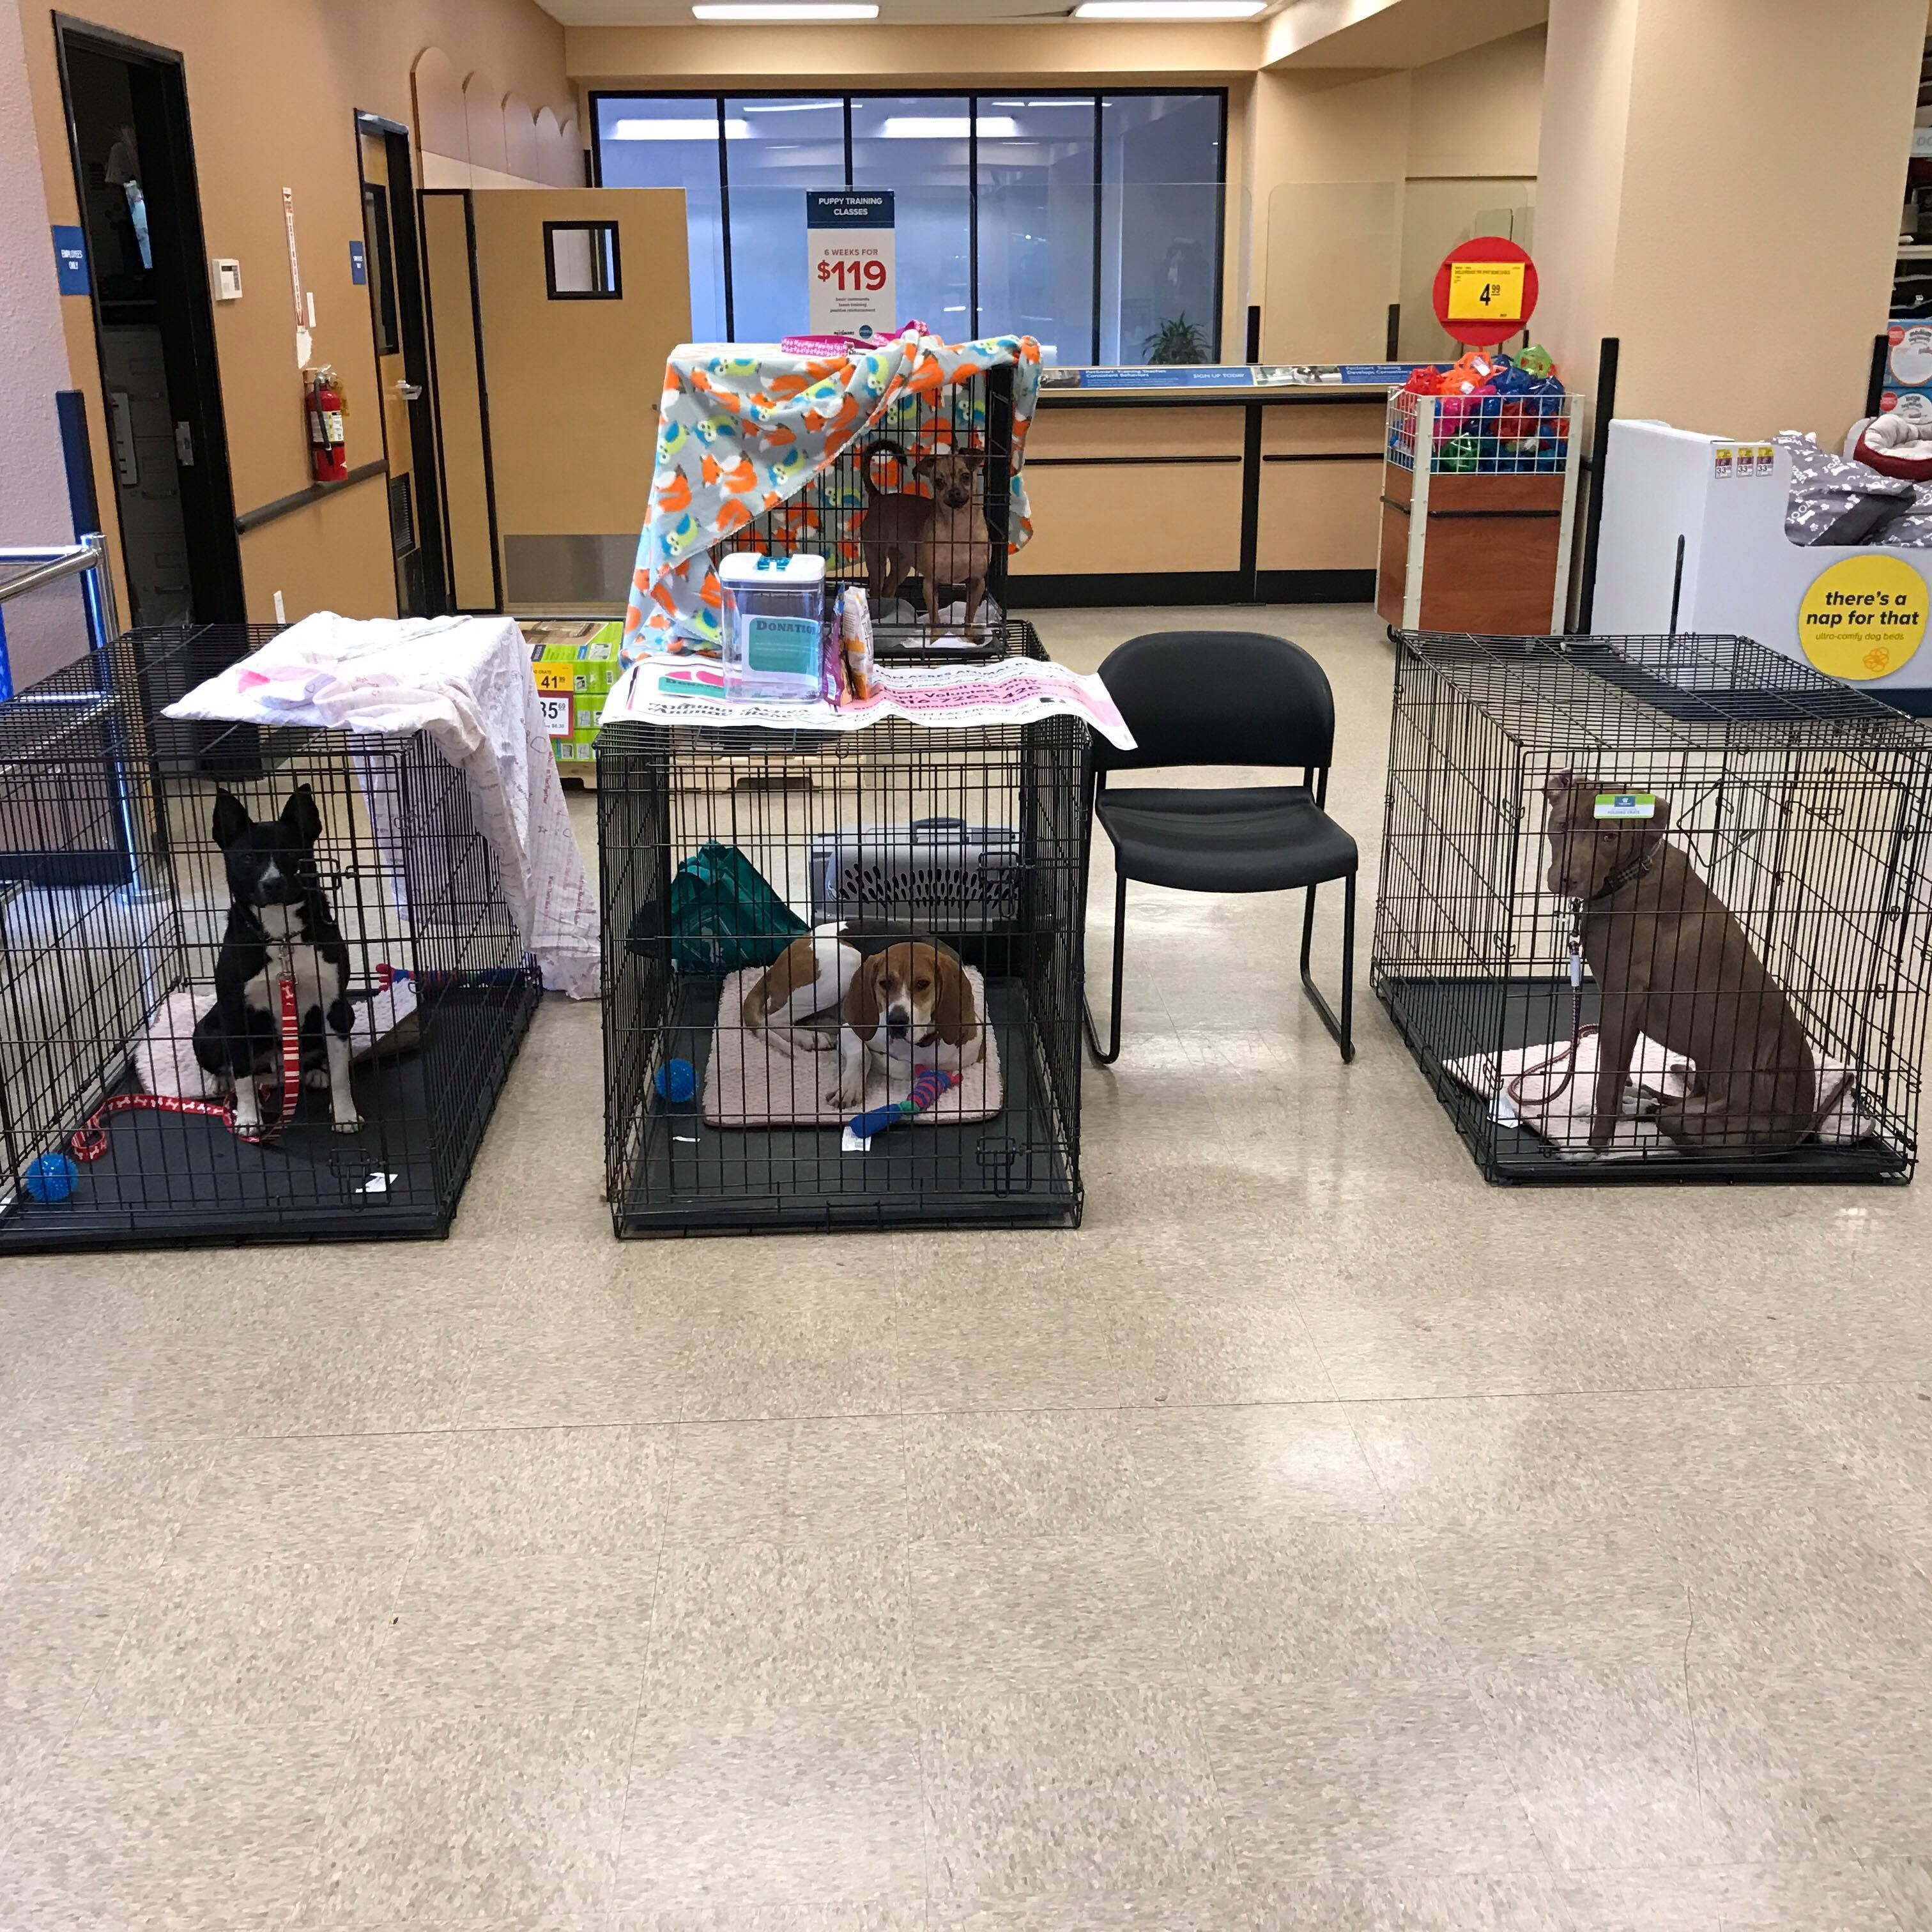 Ward Parkway Petsmart adoption events!